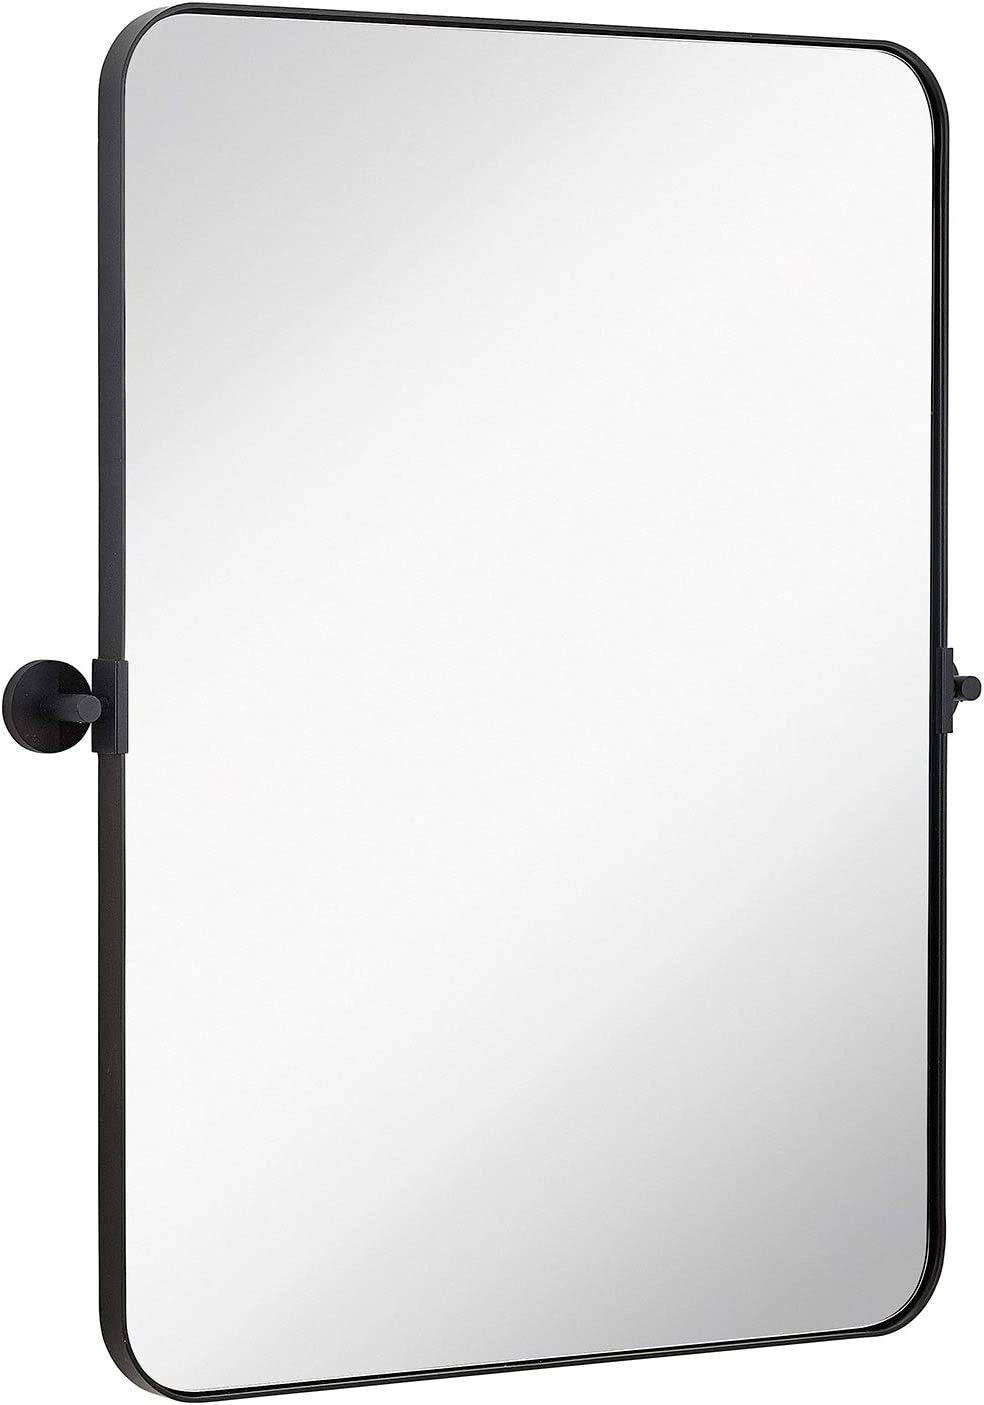 "Hamilton Hills Black Metal Surrounded Round Pivot Mirror | Silver Backed Adjustable Moving & Tilting Wall Mirror Adjustable 22"" x 30"""